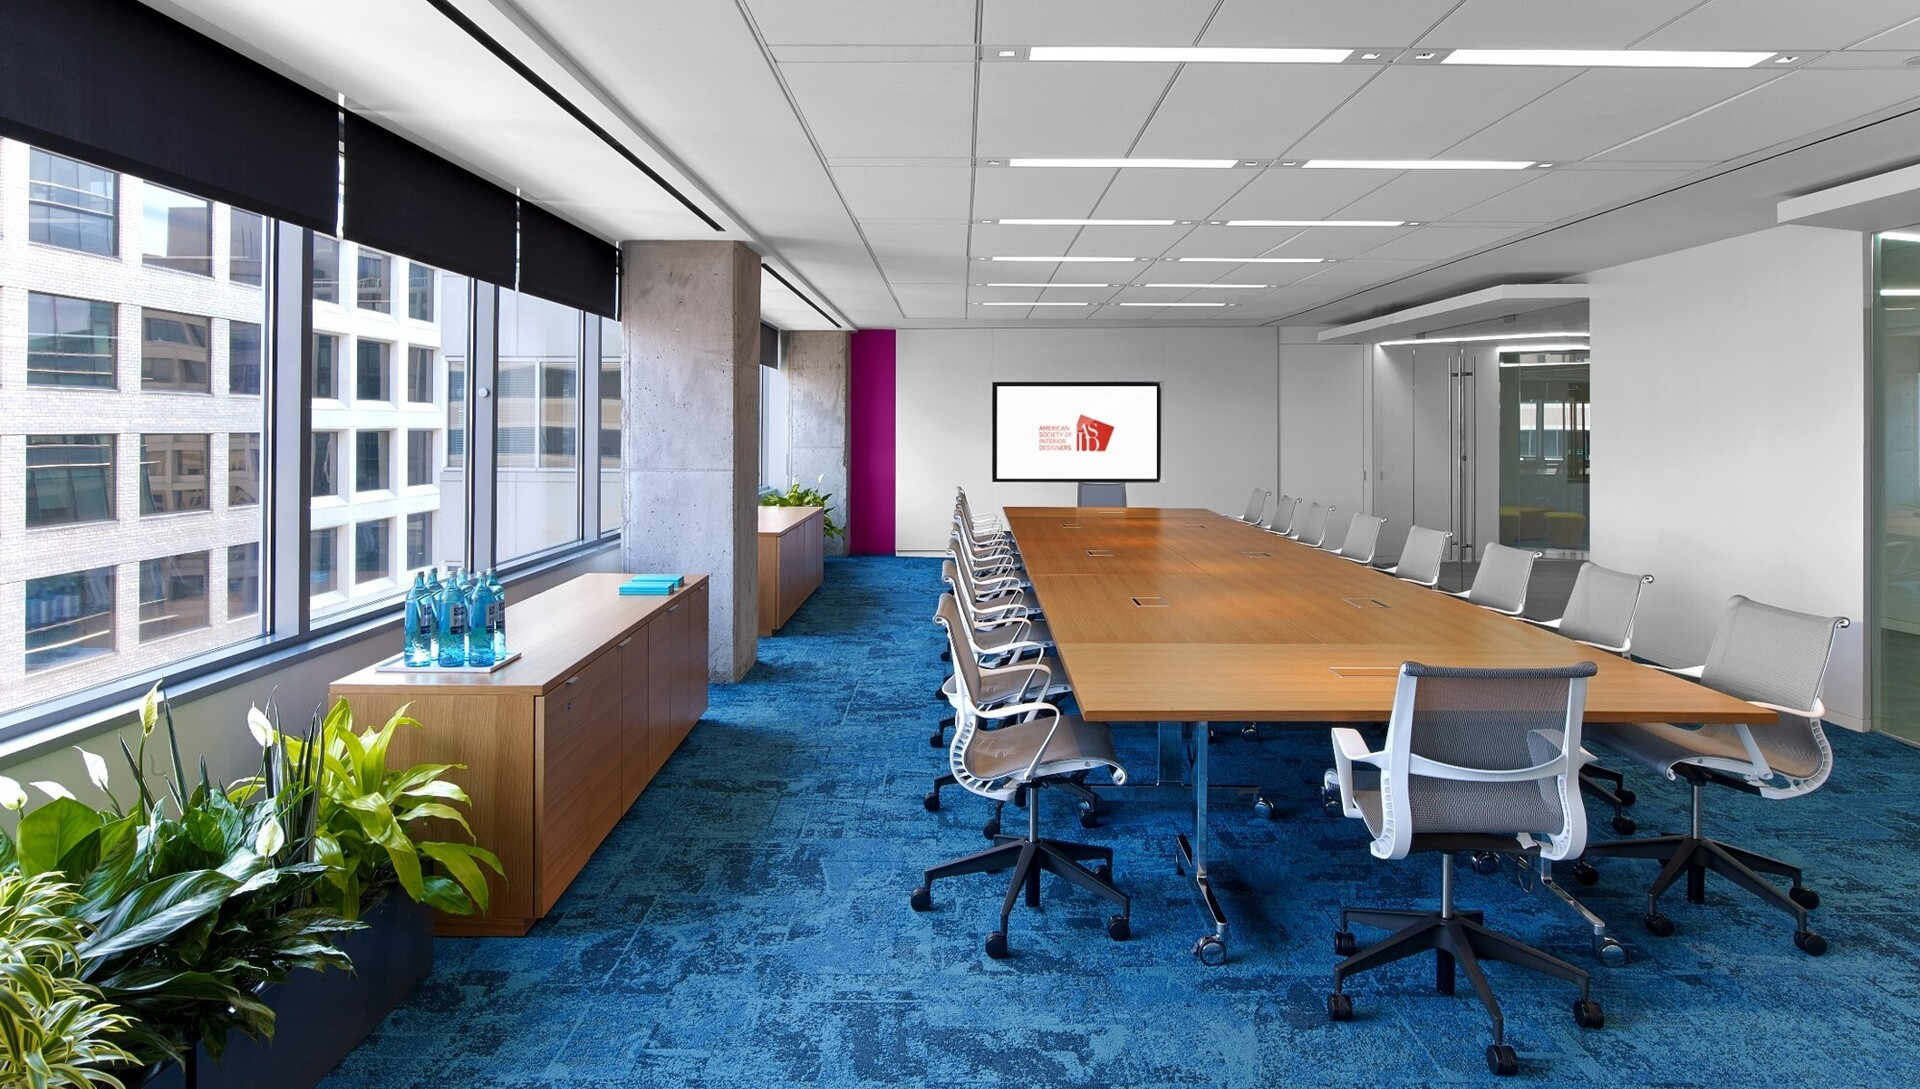 ASID's Headquarters features a variety of products by ASID chapter members.  Photography by: Eric Laignel